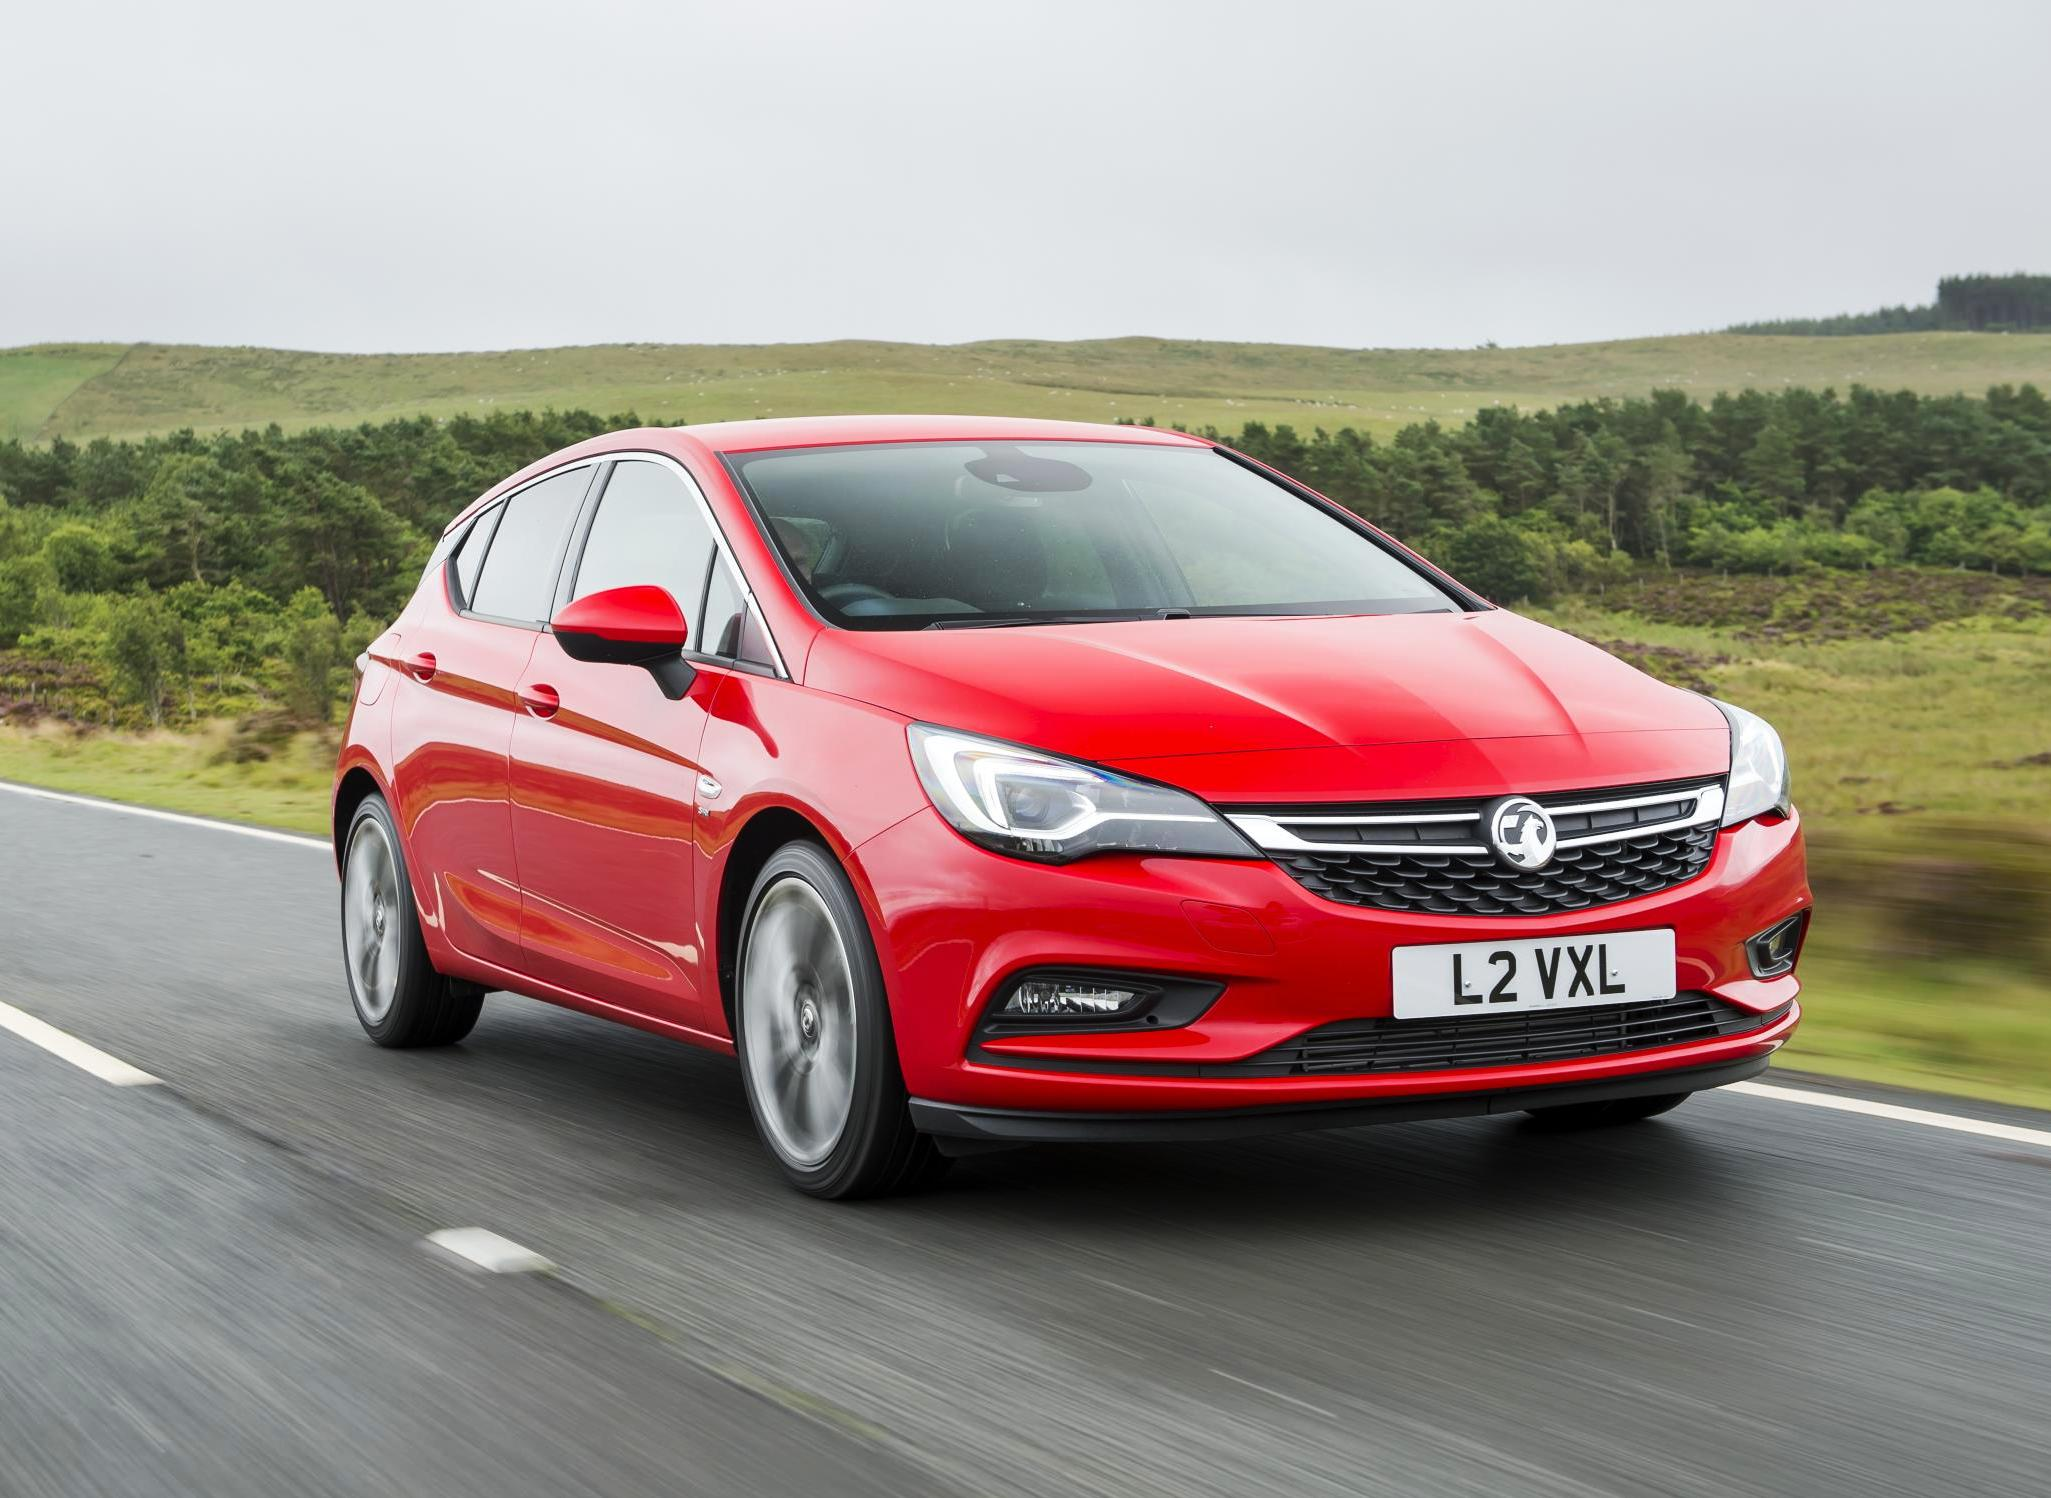 vauxhall astra elite diesel hatchback road test wheels alive. Black Bedroom Furniture Sets. Home Design Ideas